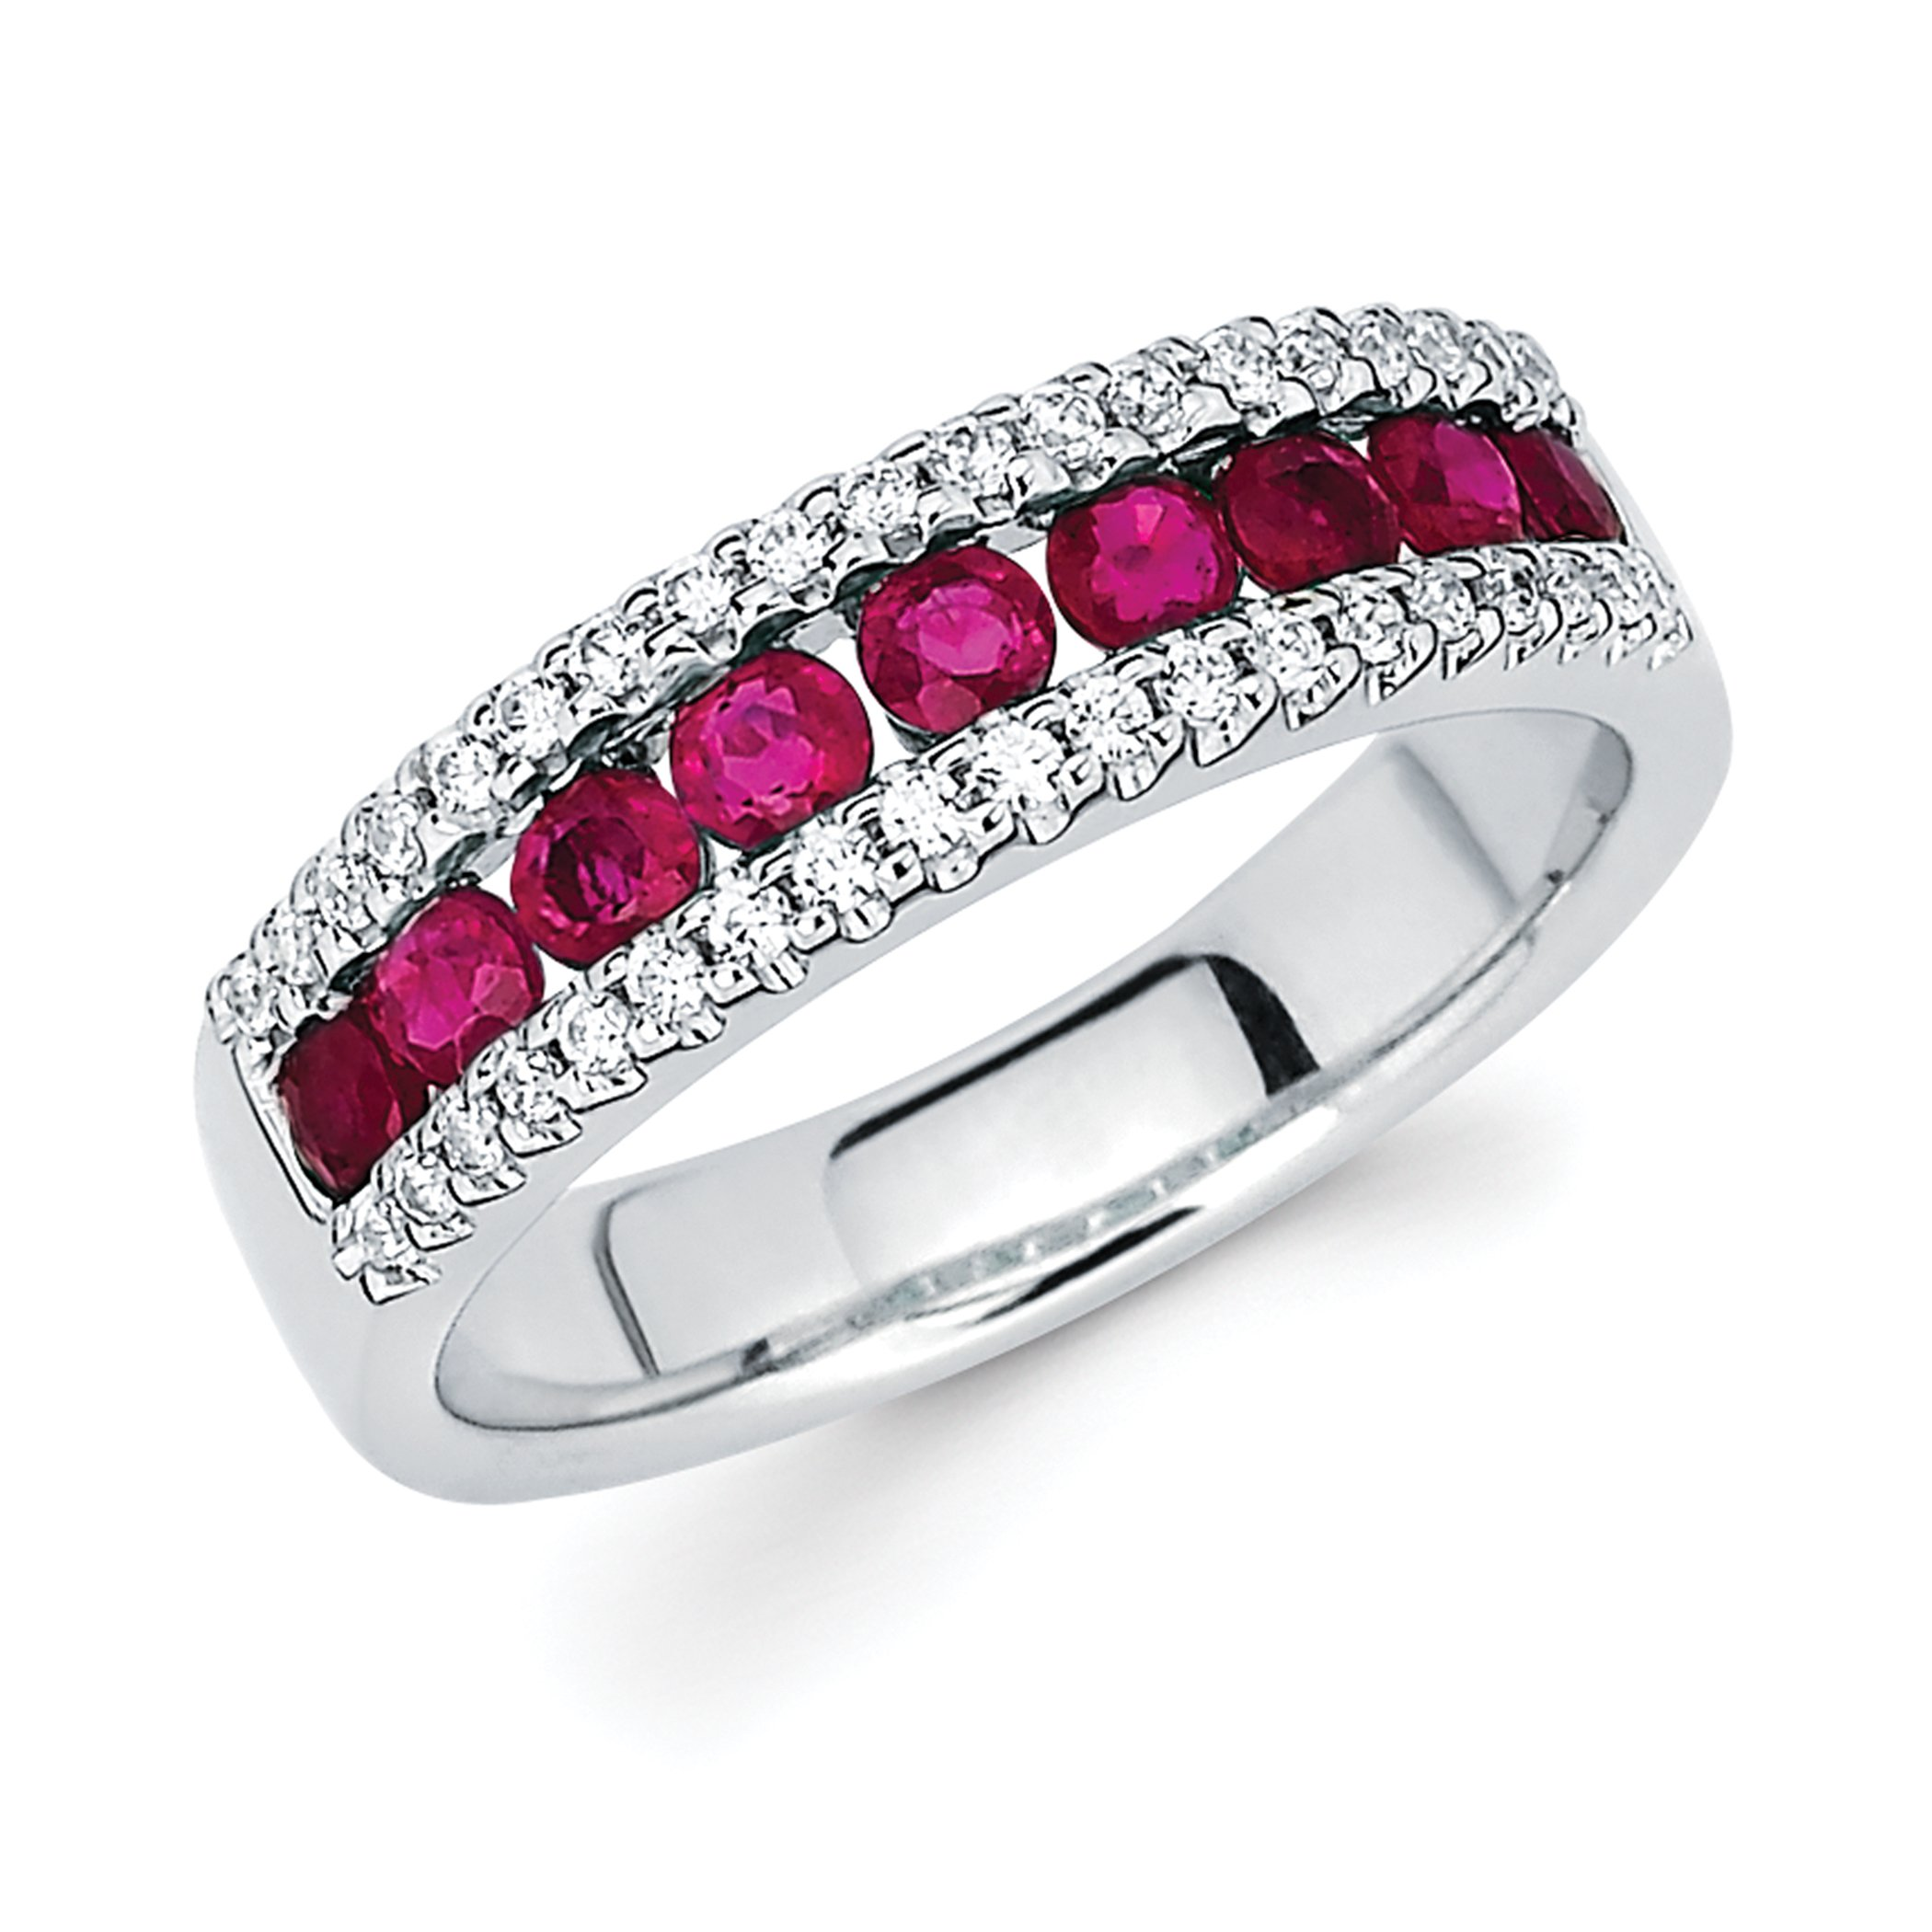 14K White Gold Channel Set Ruby and Diamond Accent Band Ring